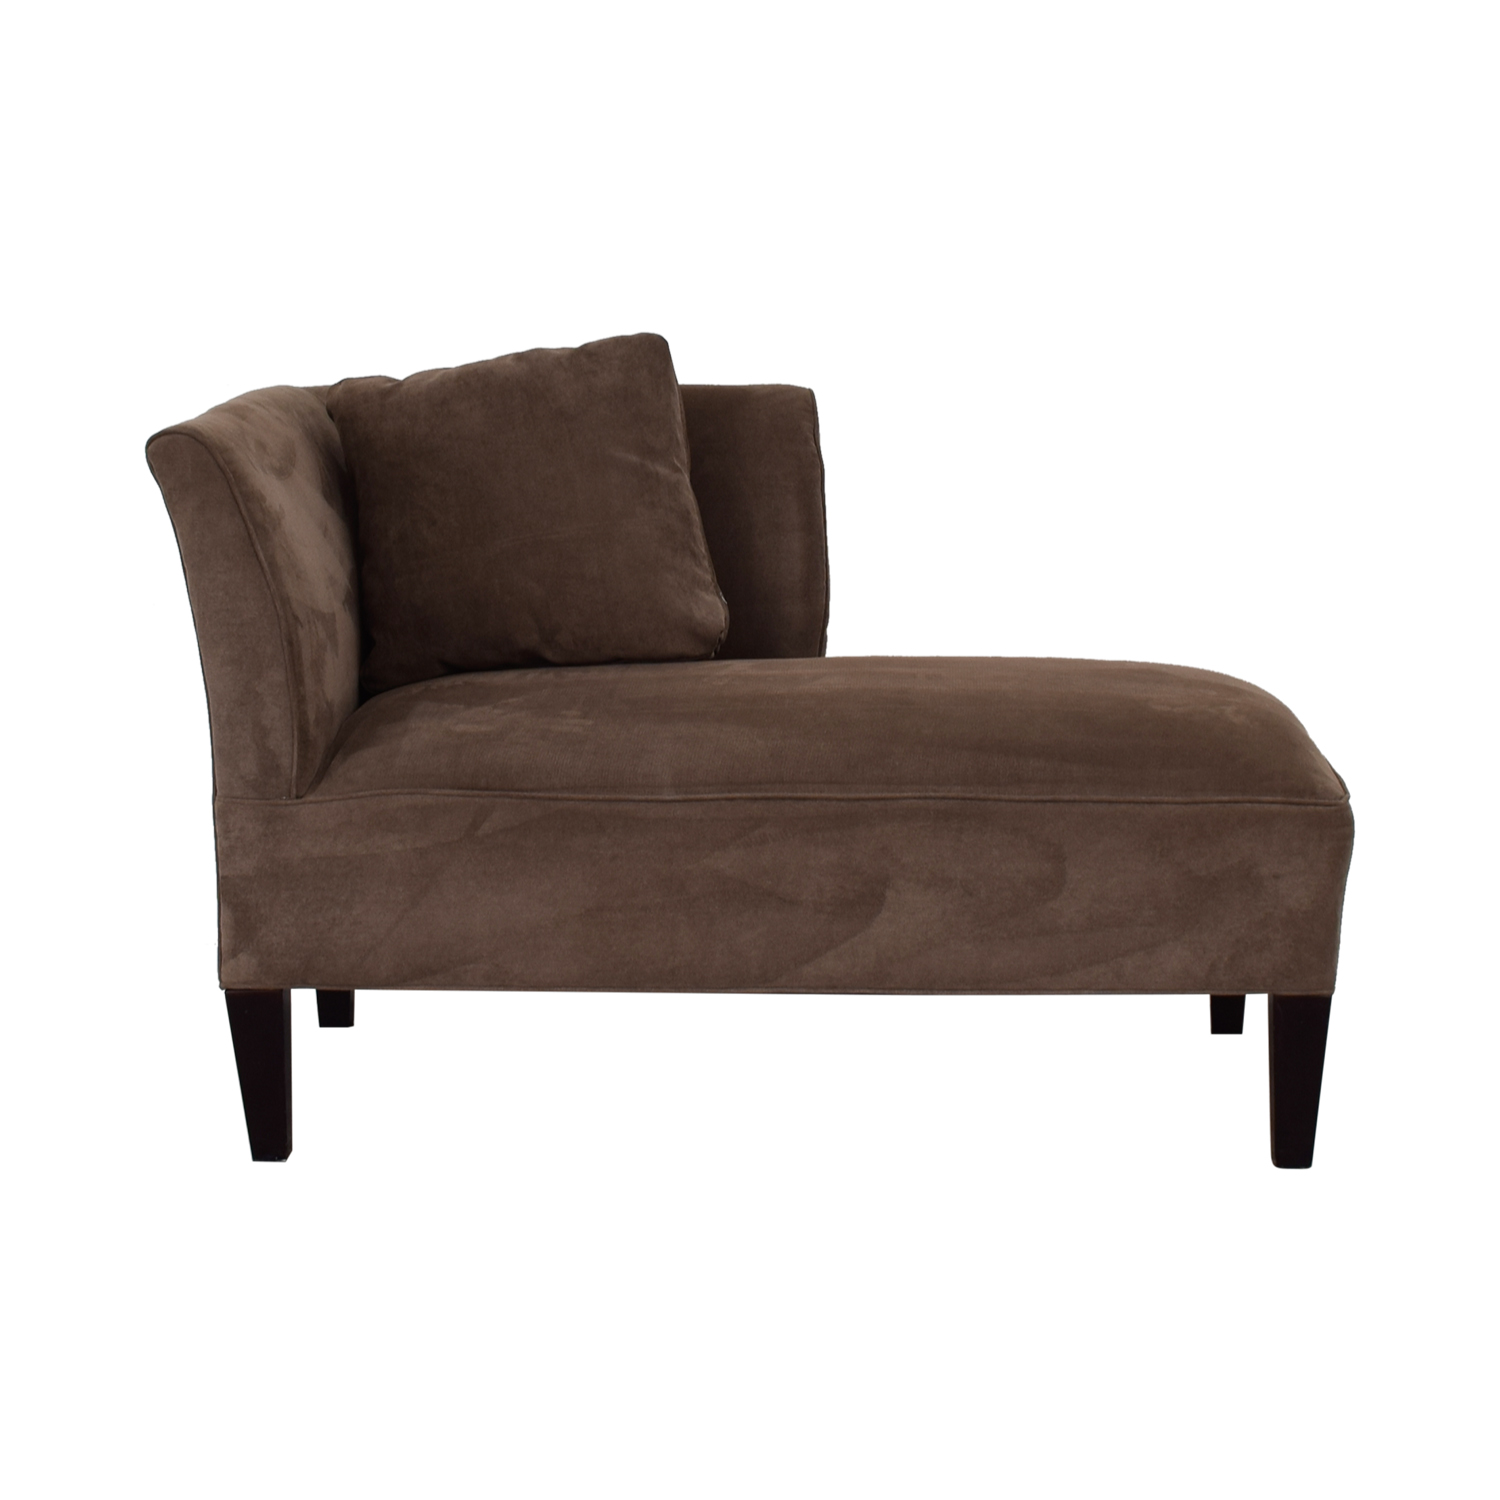 Broyhill Broyhill Brown Suede Chaise Lounge for sale